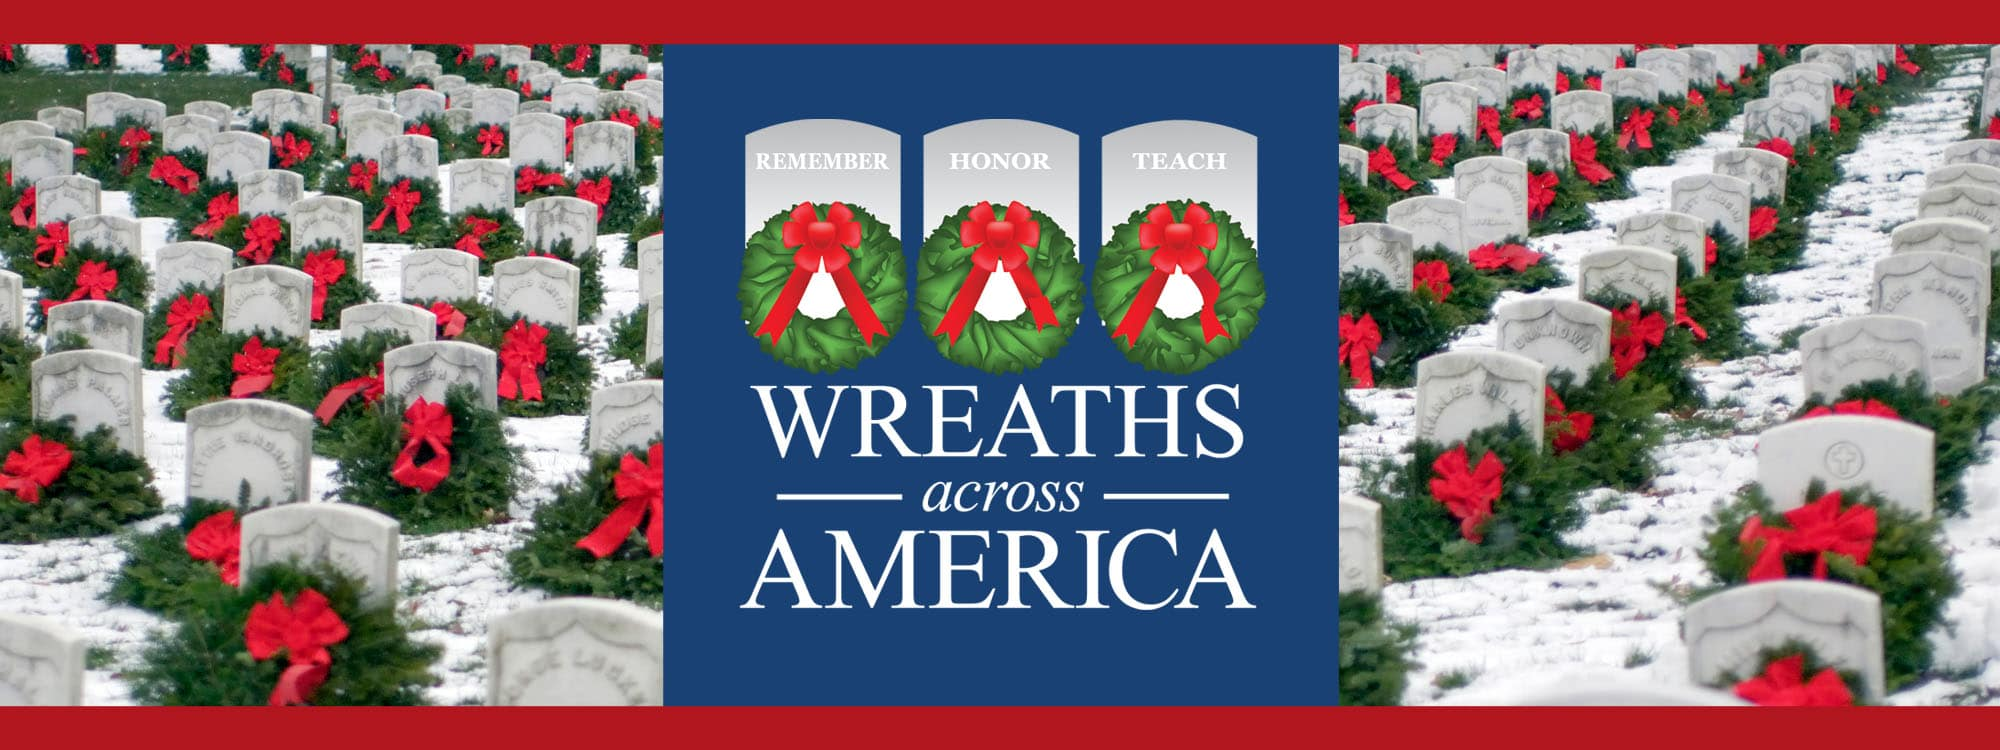 Waa Christmas 2020 The Bath National Cemetery is set for Wreaths Across America Day